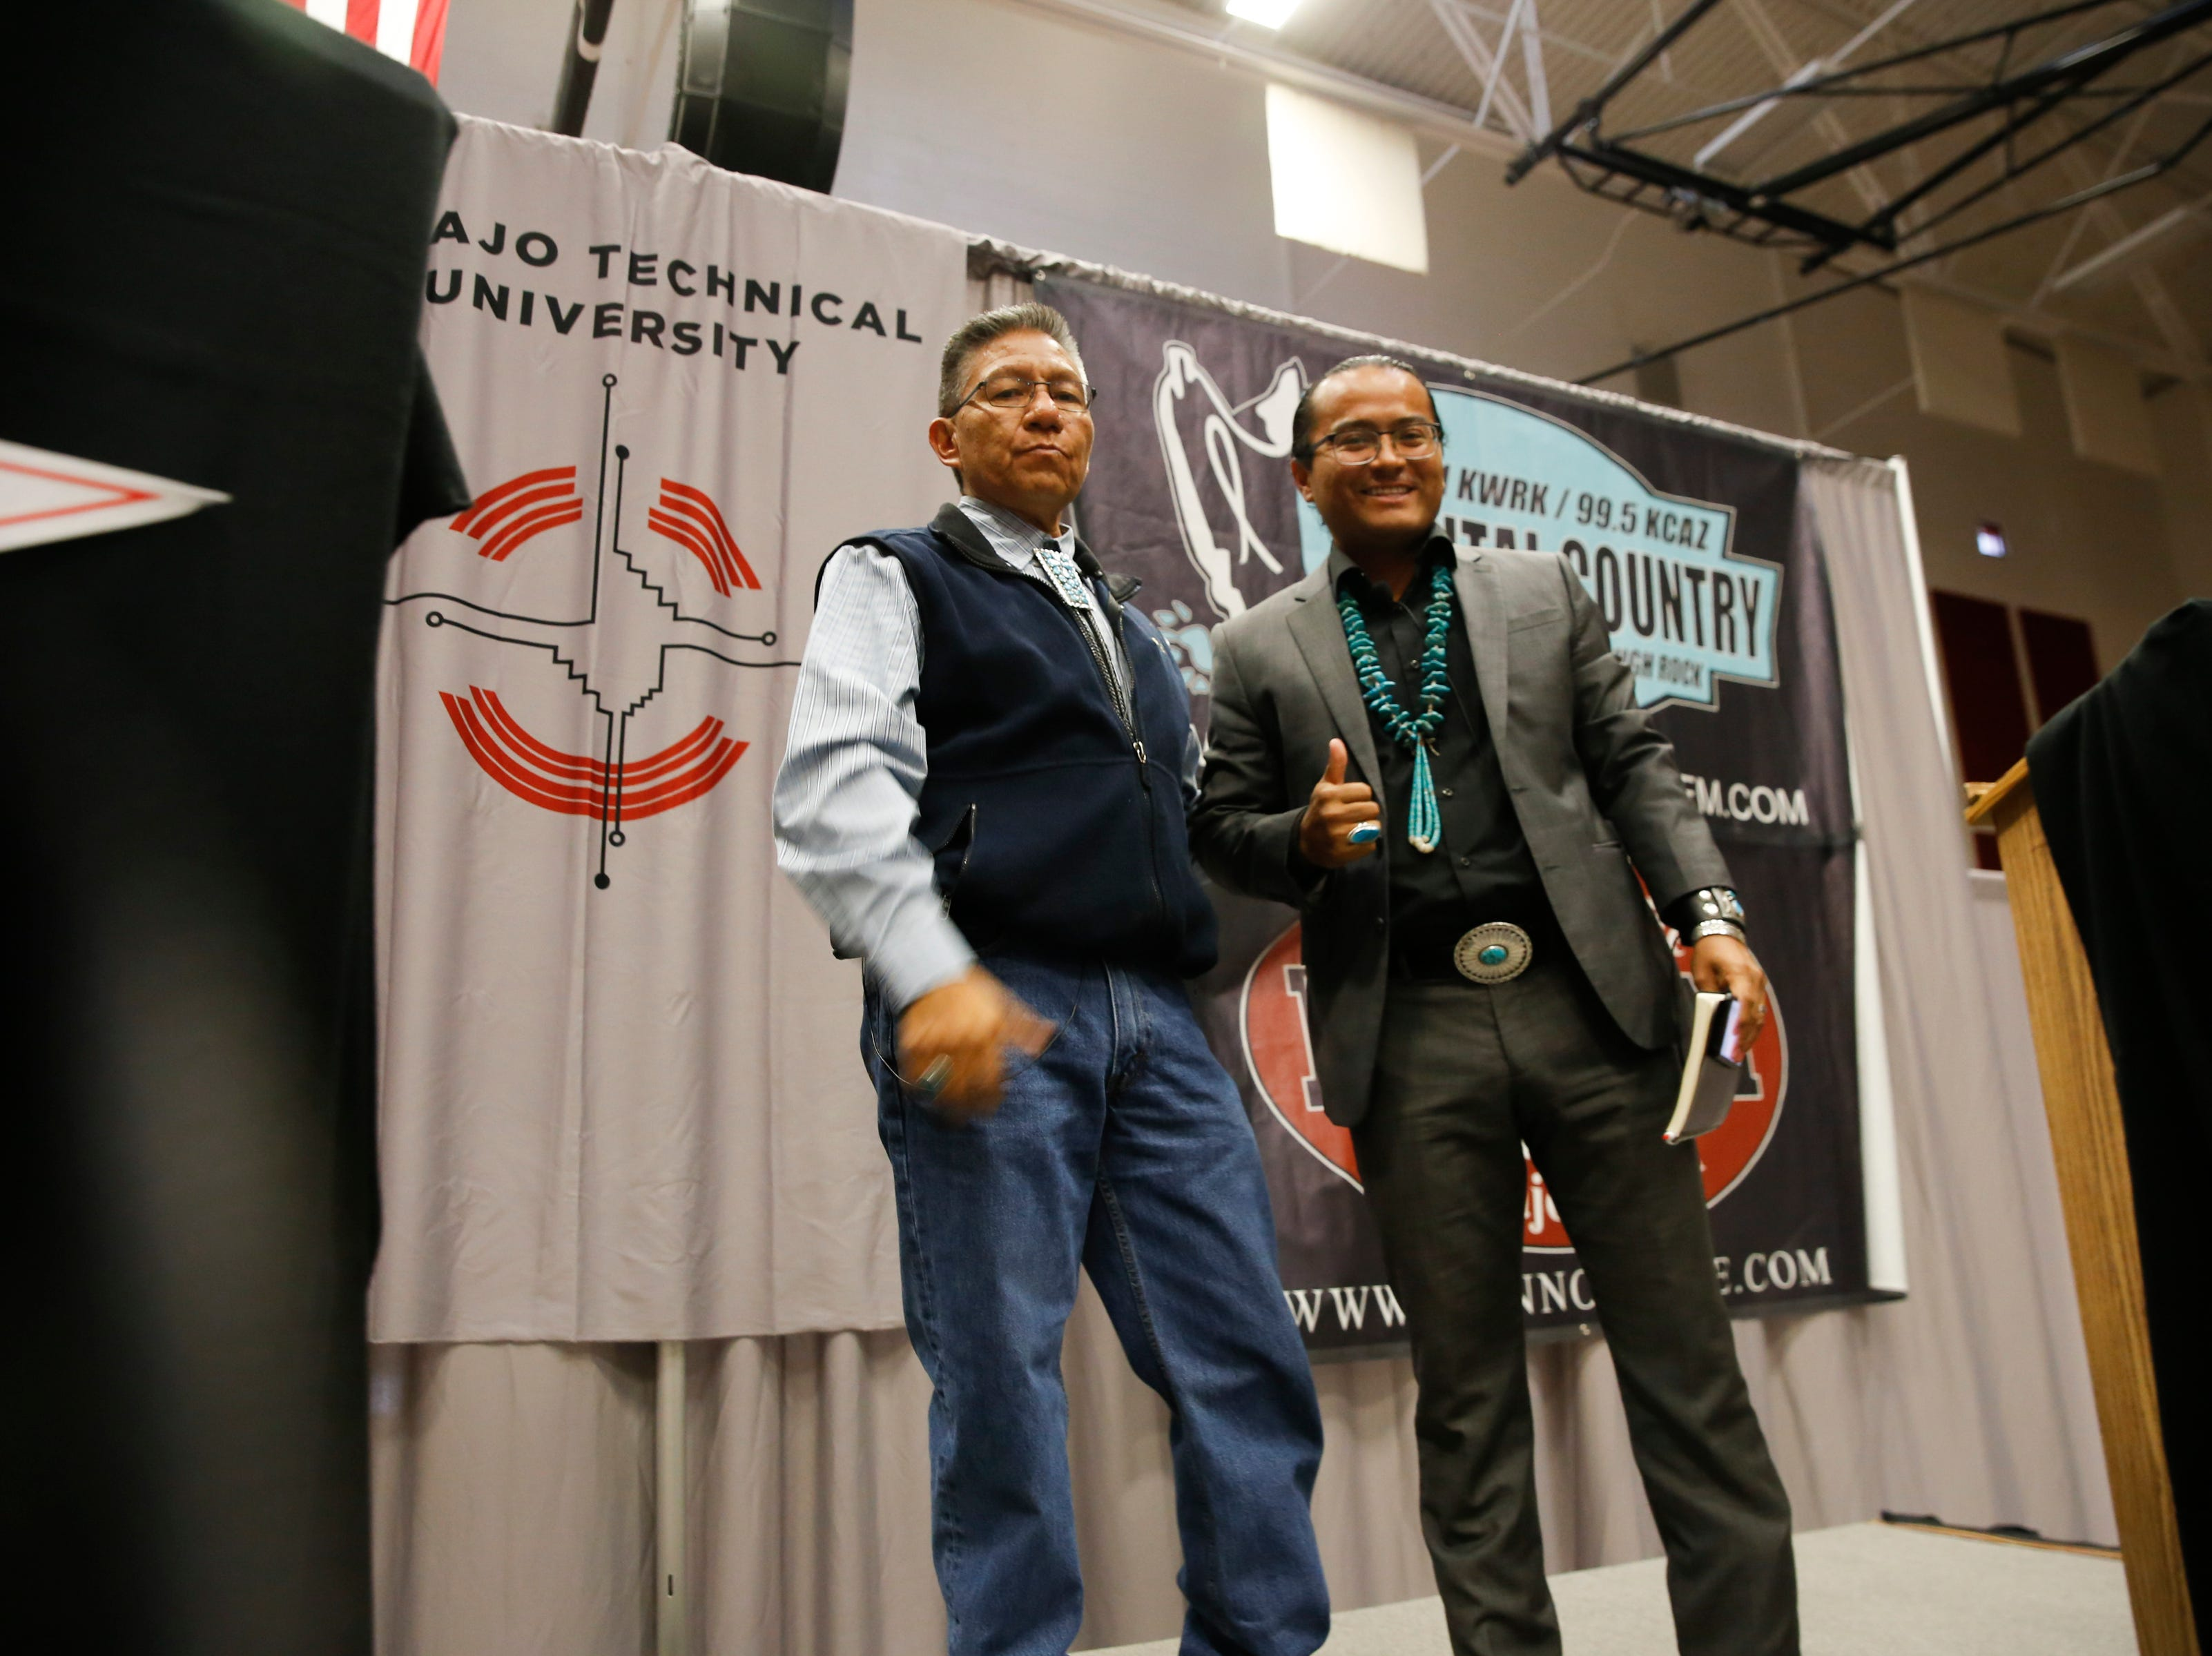 Navajo Nation Vice President candidates Myron Lizer, left, and Buu Nygren acknowledge their supporters at the conclusion of their debate, Tuesday, Oct. 16, 2018 at Navajo Technical University's Wellness Center in Crownpoint.